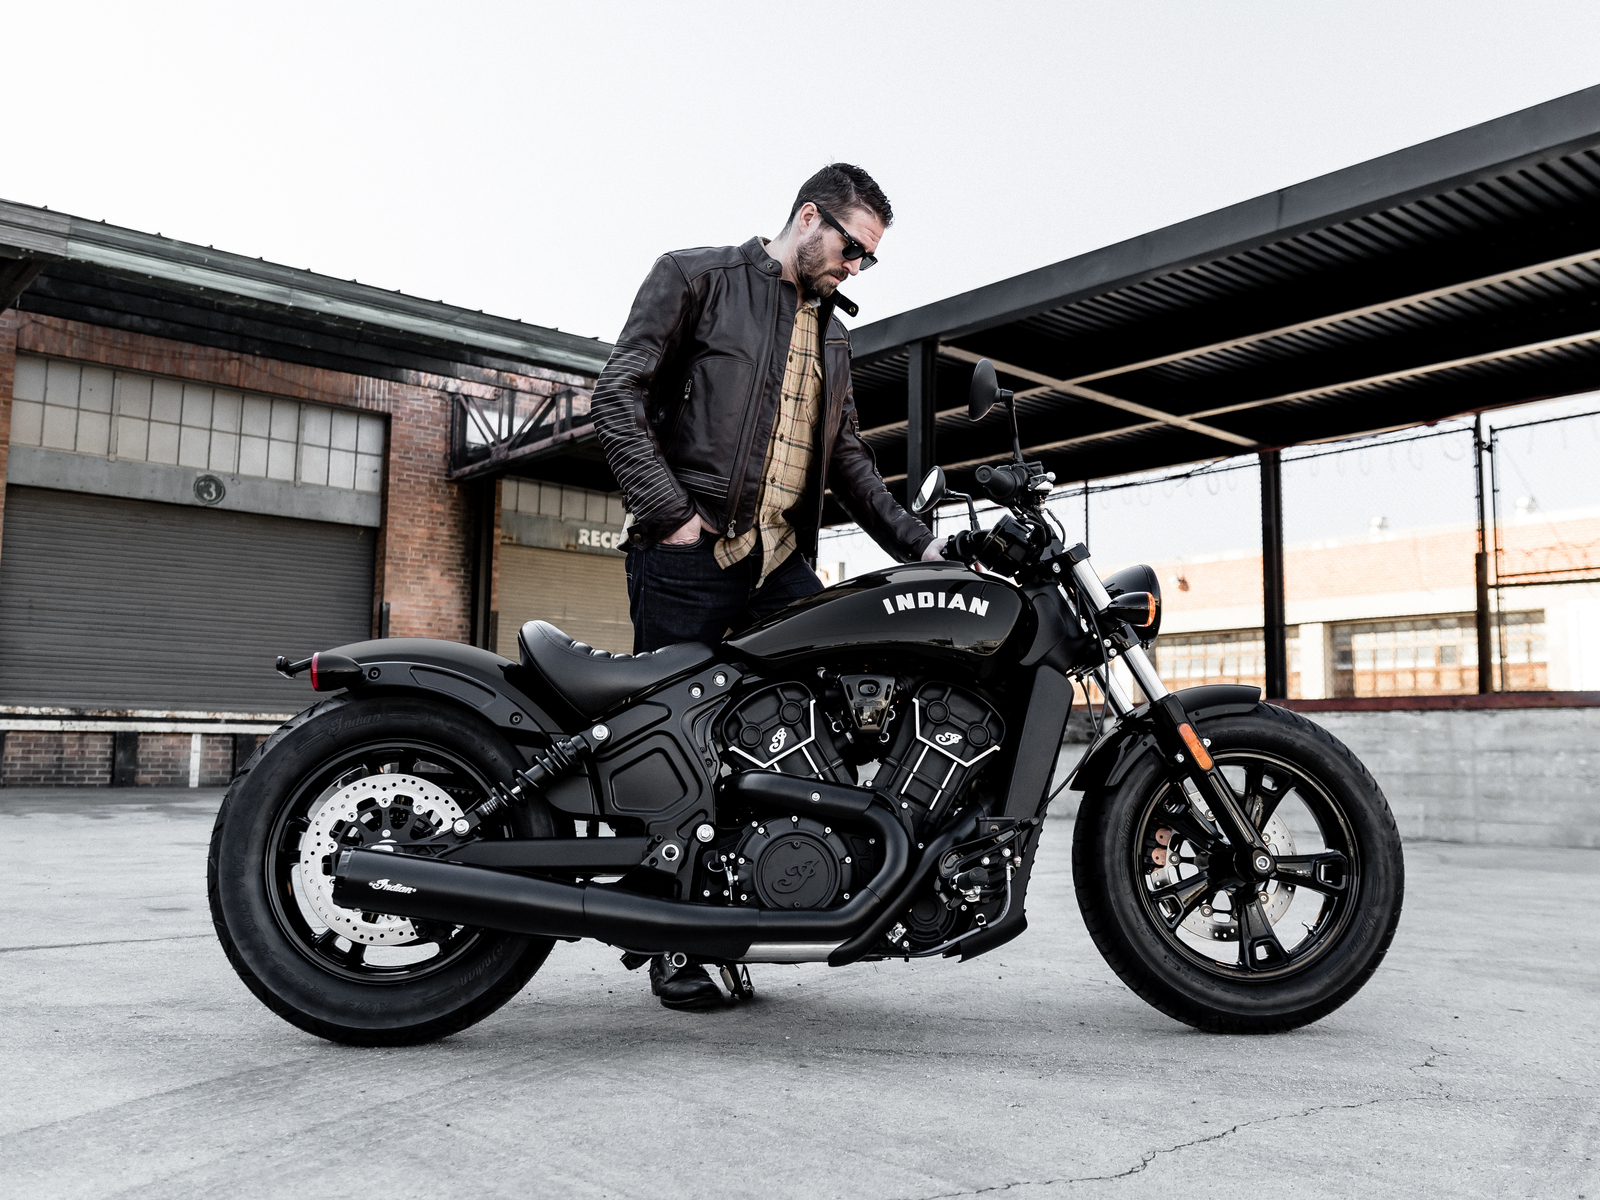 indian-scout-bobber-sixty-2020-0m.jpg